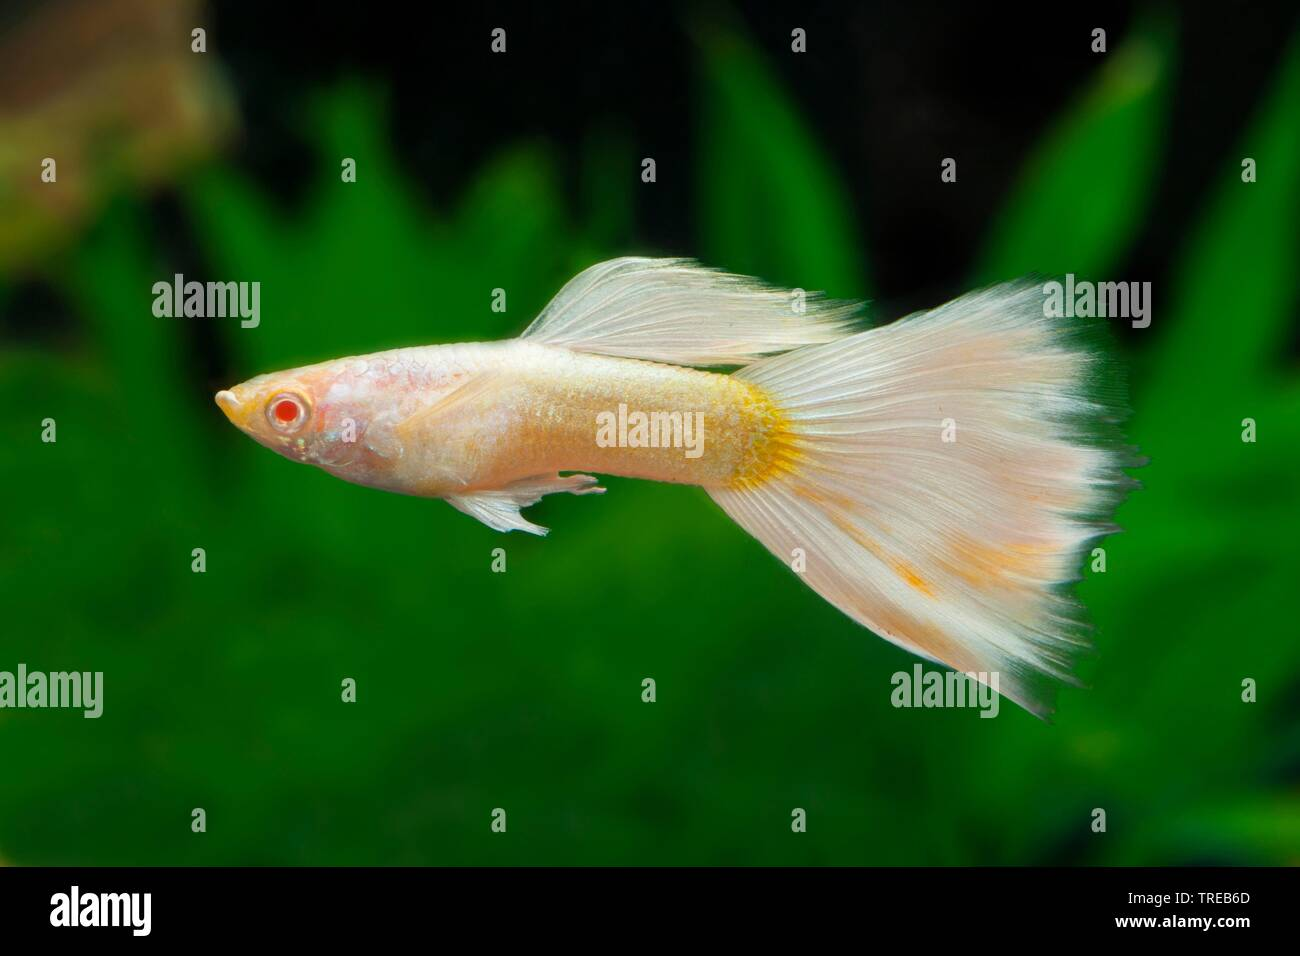 Platinum Fish High Resolution Stock Photography And Images Alamy